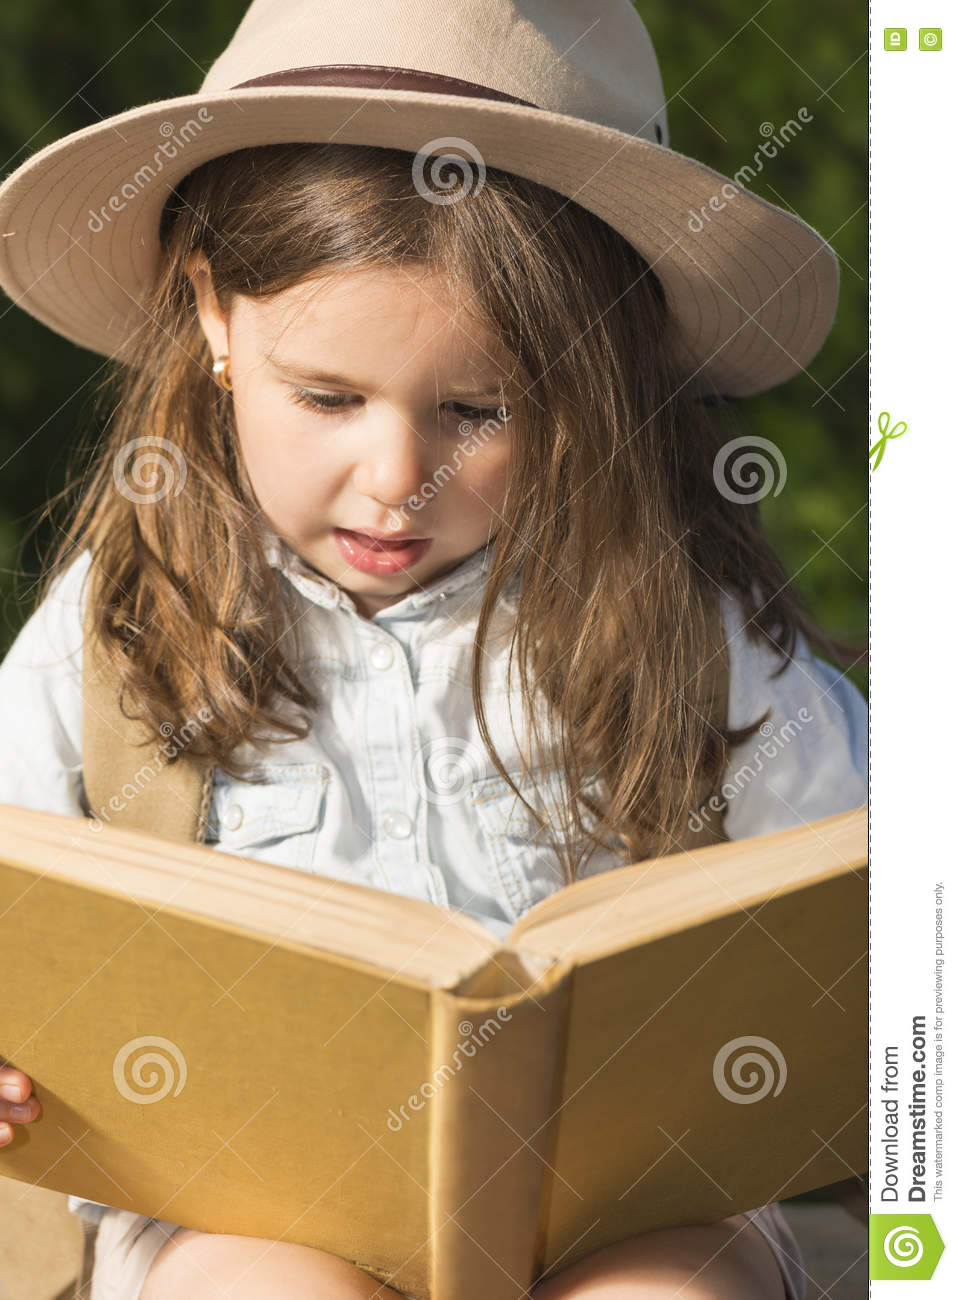 bfb7a25490b2f Adorable little girl in a safari hat and explorer clothes reading old book  sitting in a wooden suitcase with backpack and safety rope outdoor